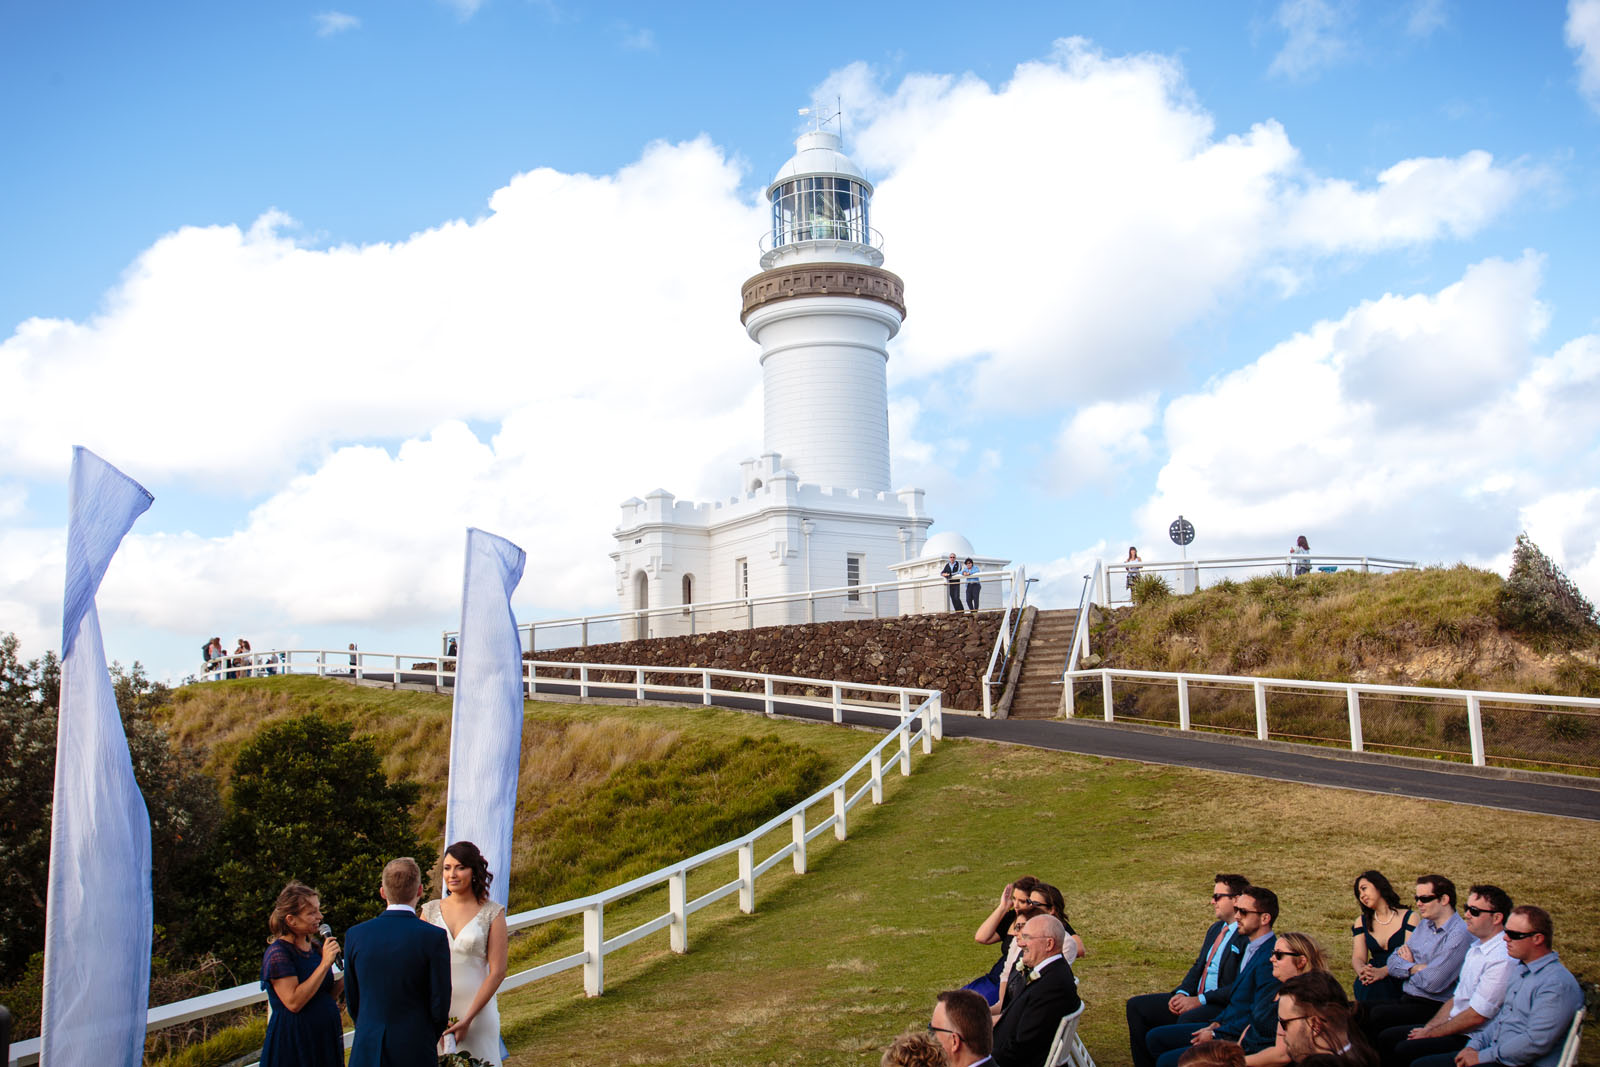 byron_bay_wedding_photogrpaher_589